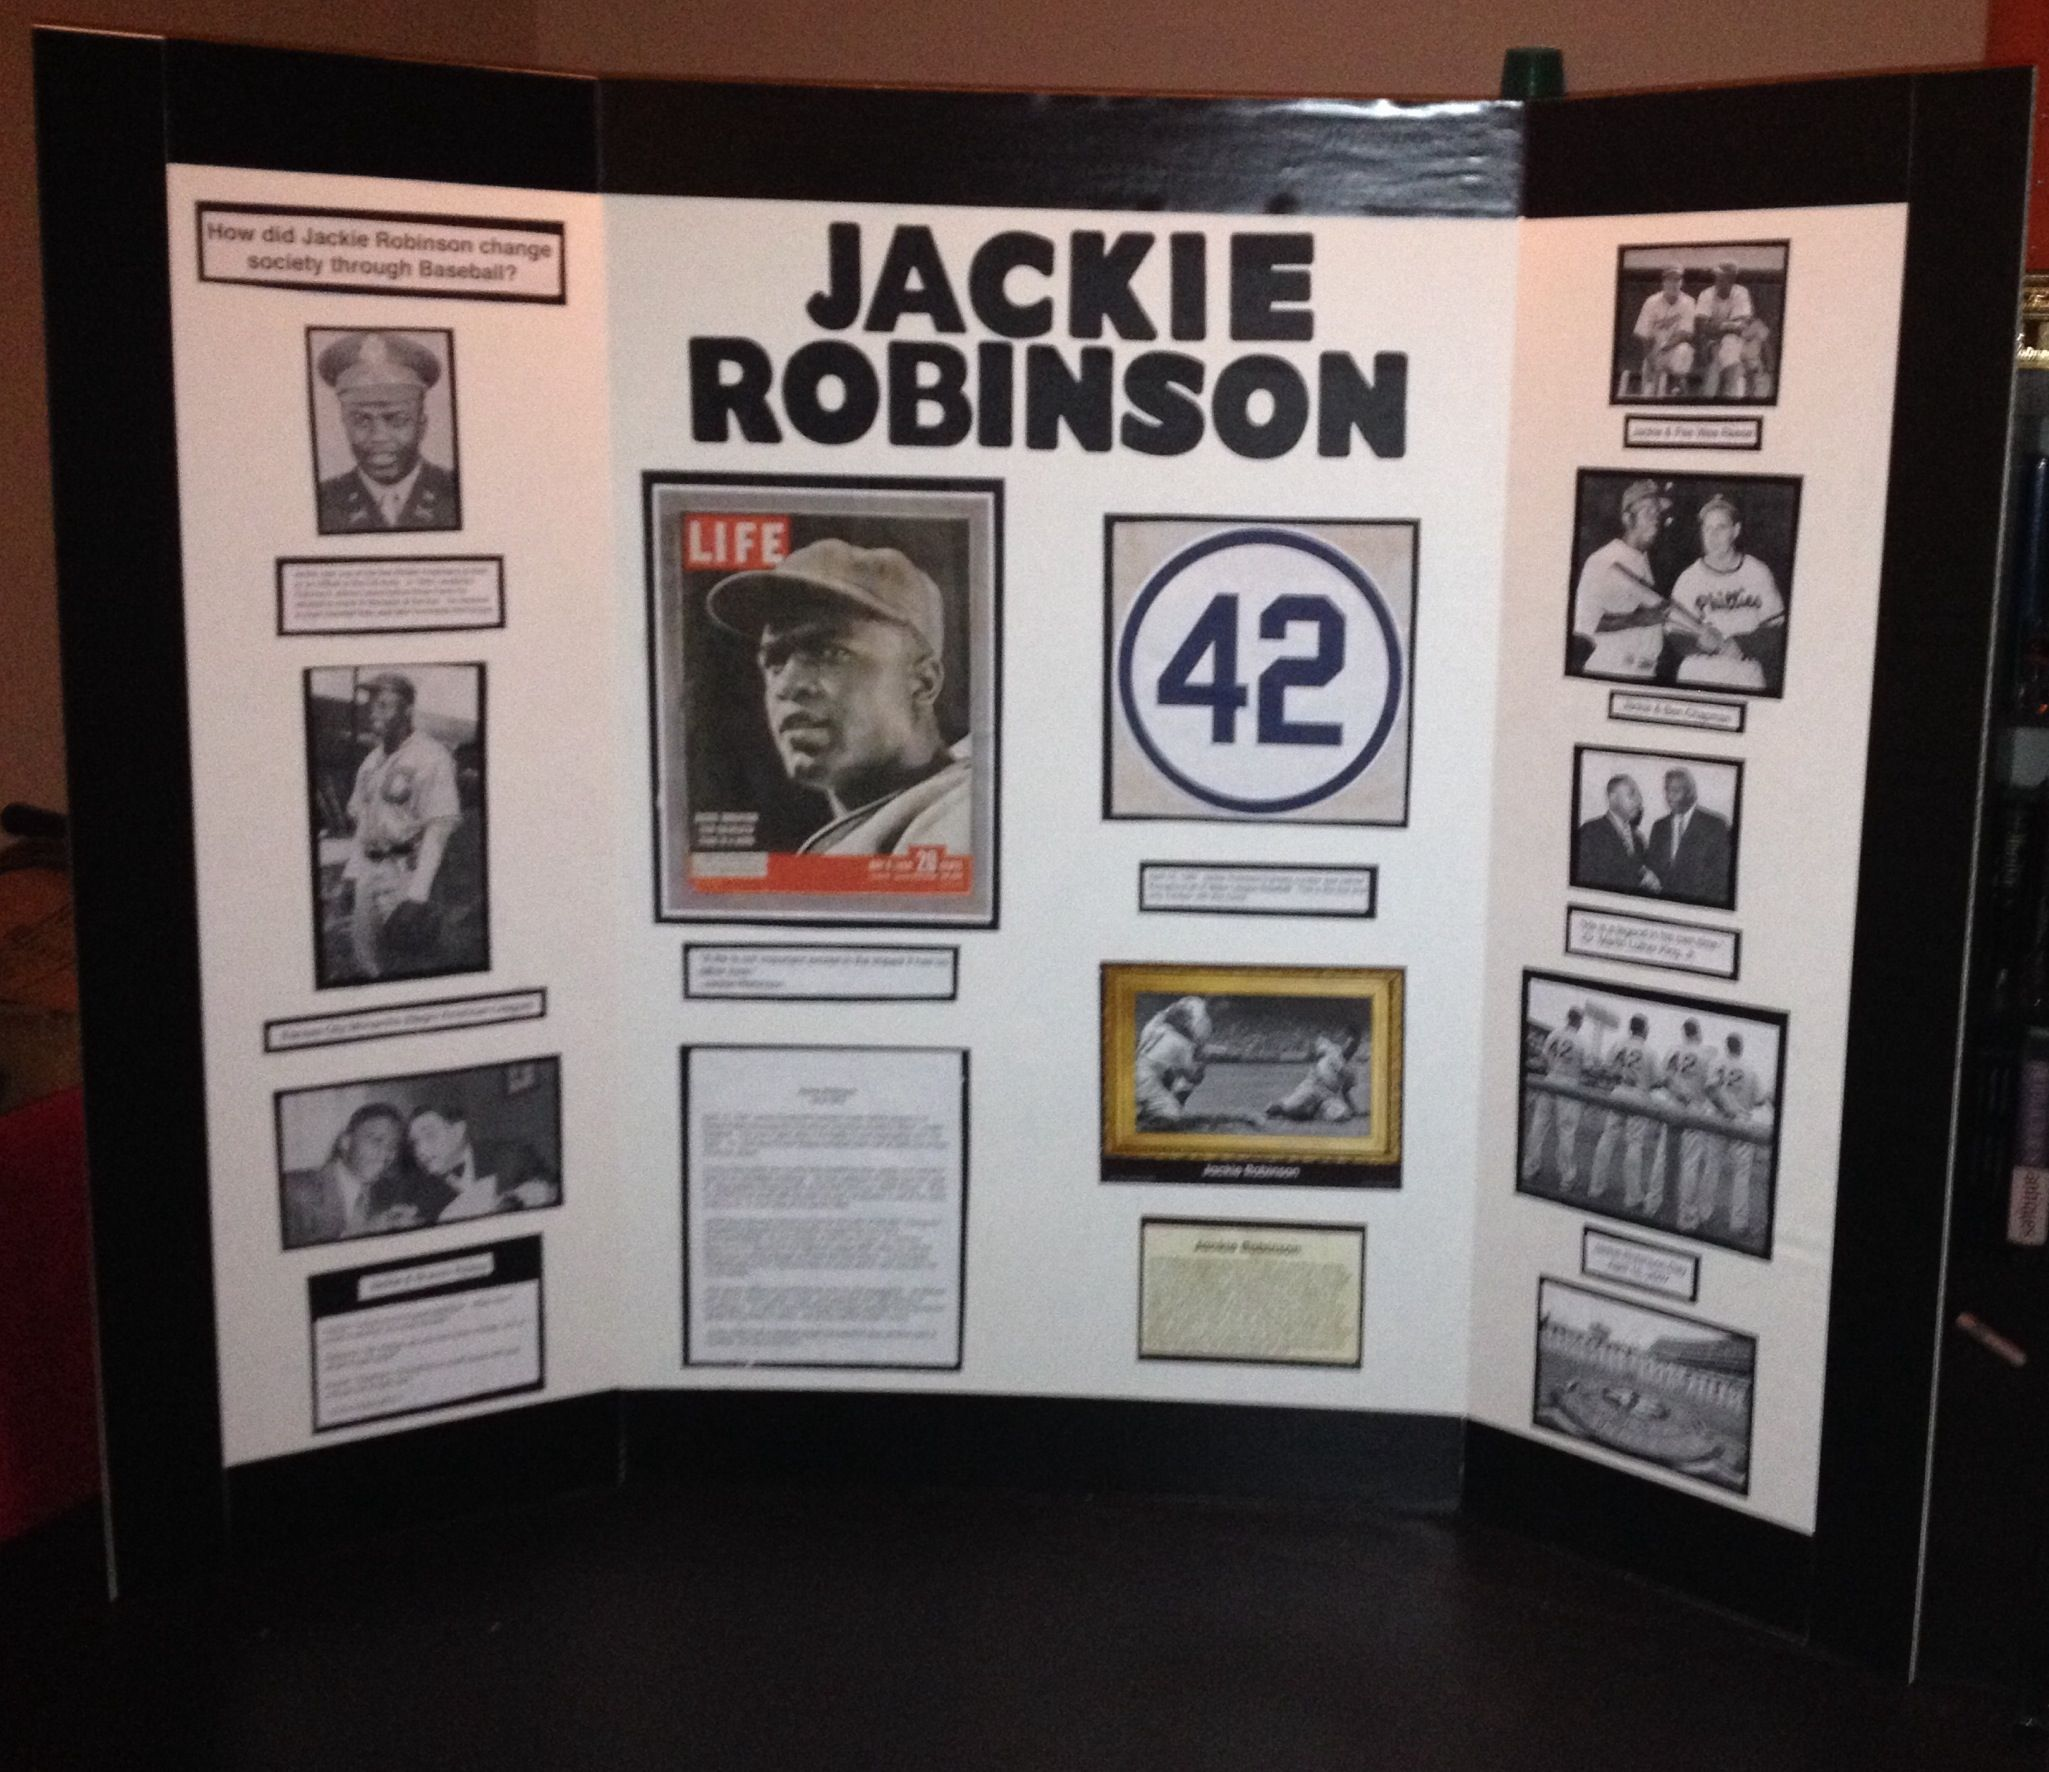 Daughters Social Stu S Board She Chose Jackie Robinson